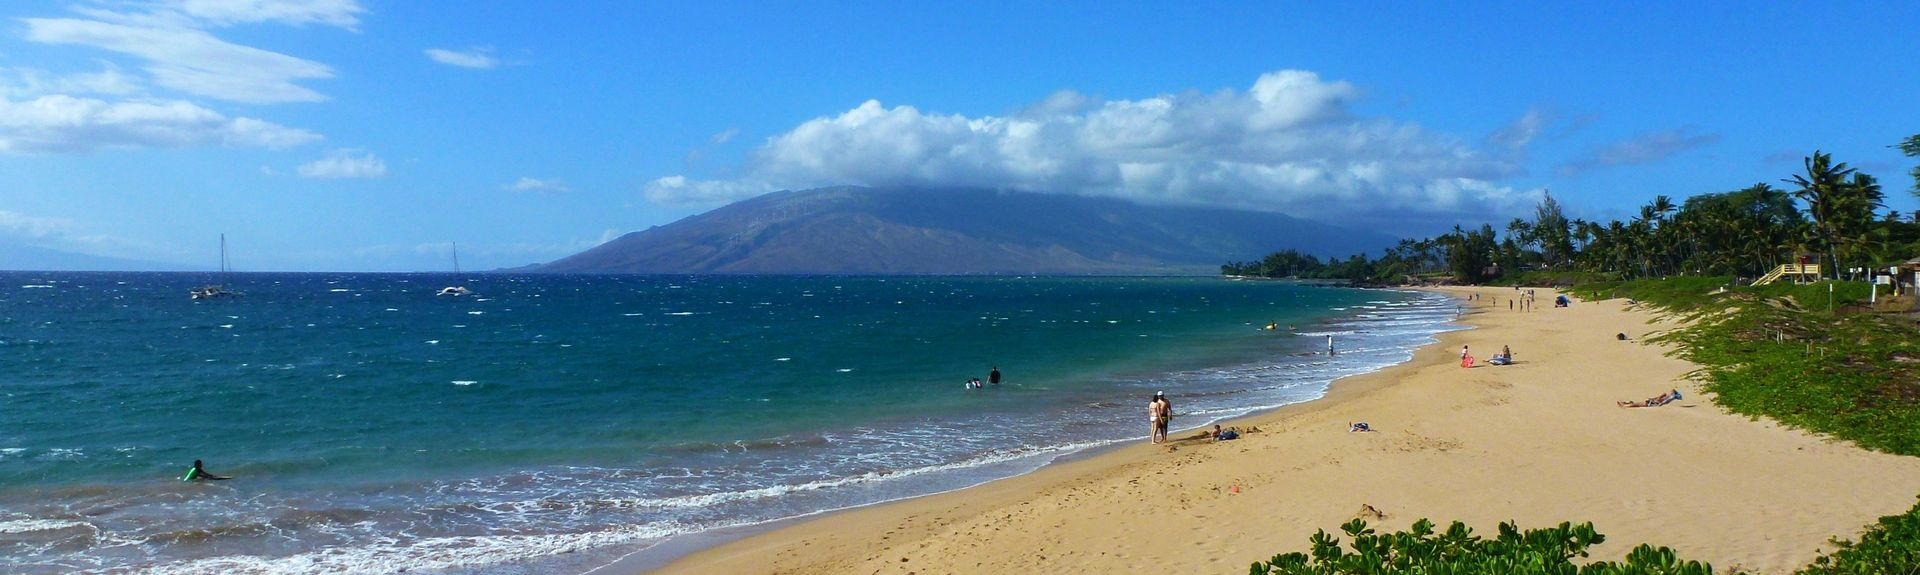 Kamaole Sands, Kihei, Hawaii, United States of America